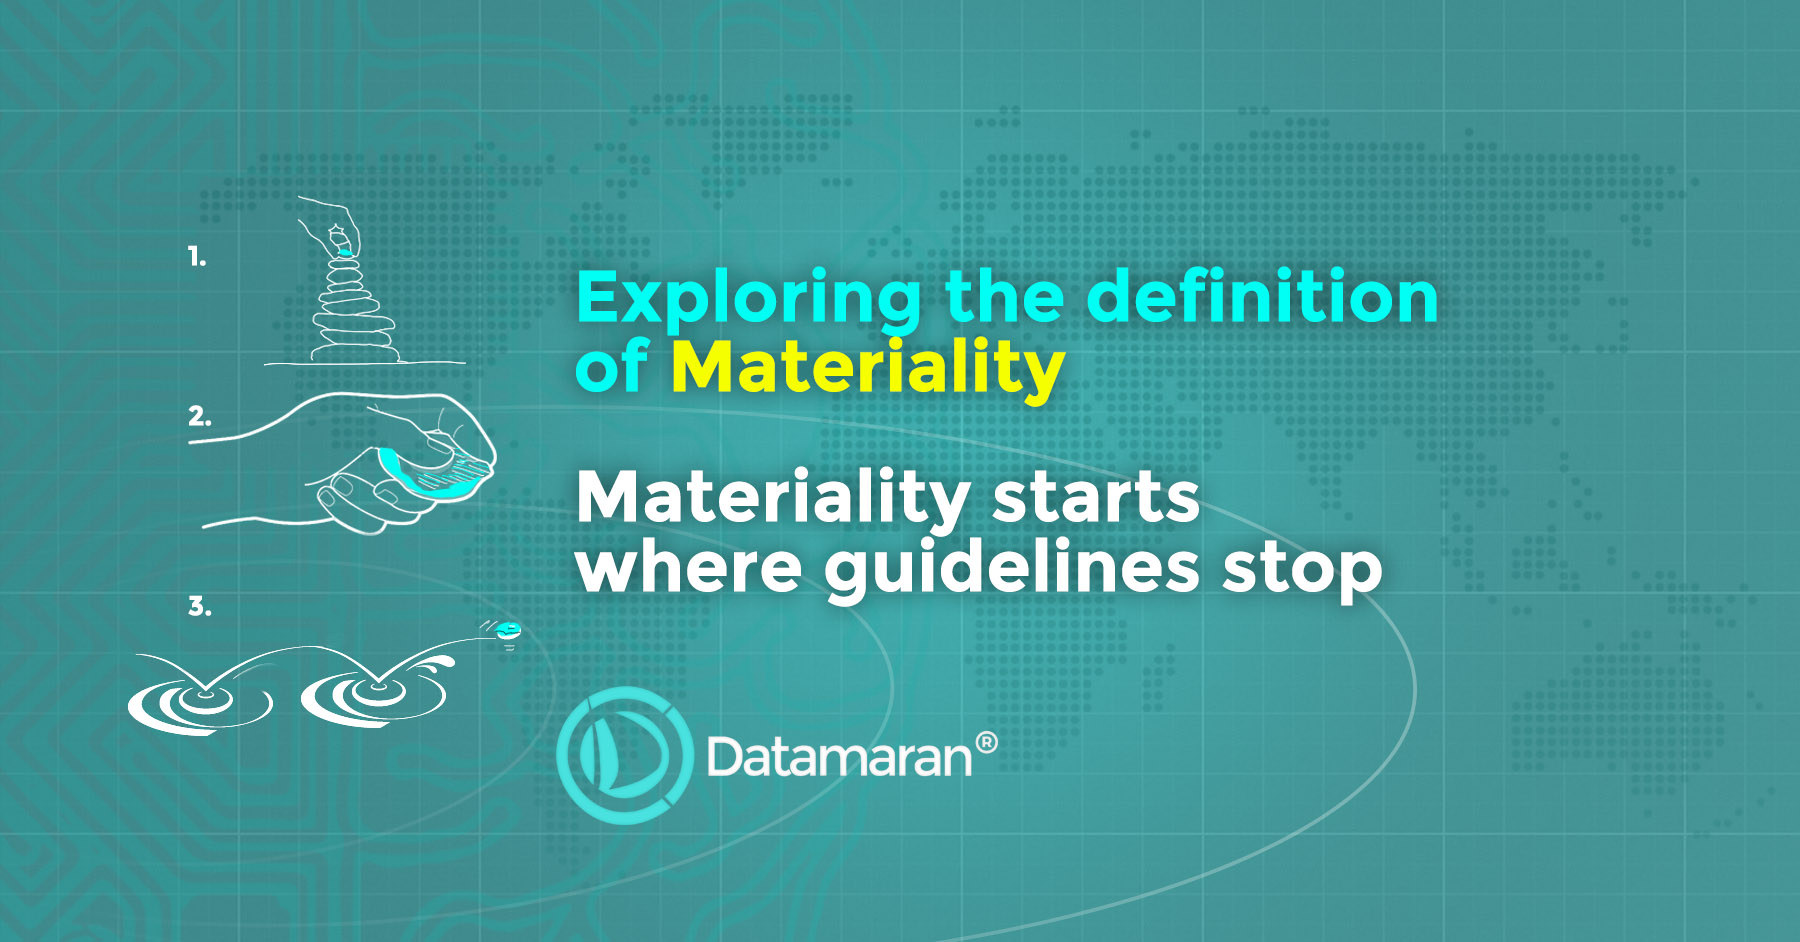 Exploring the definition of materiality